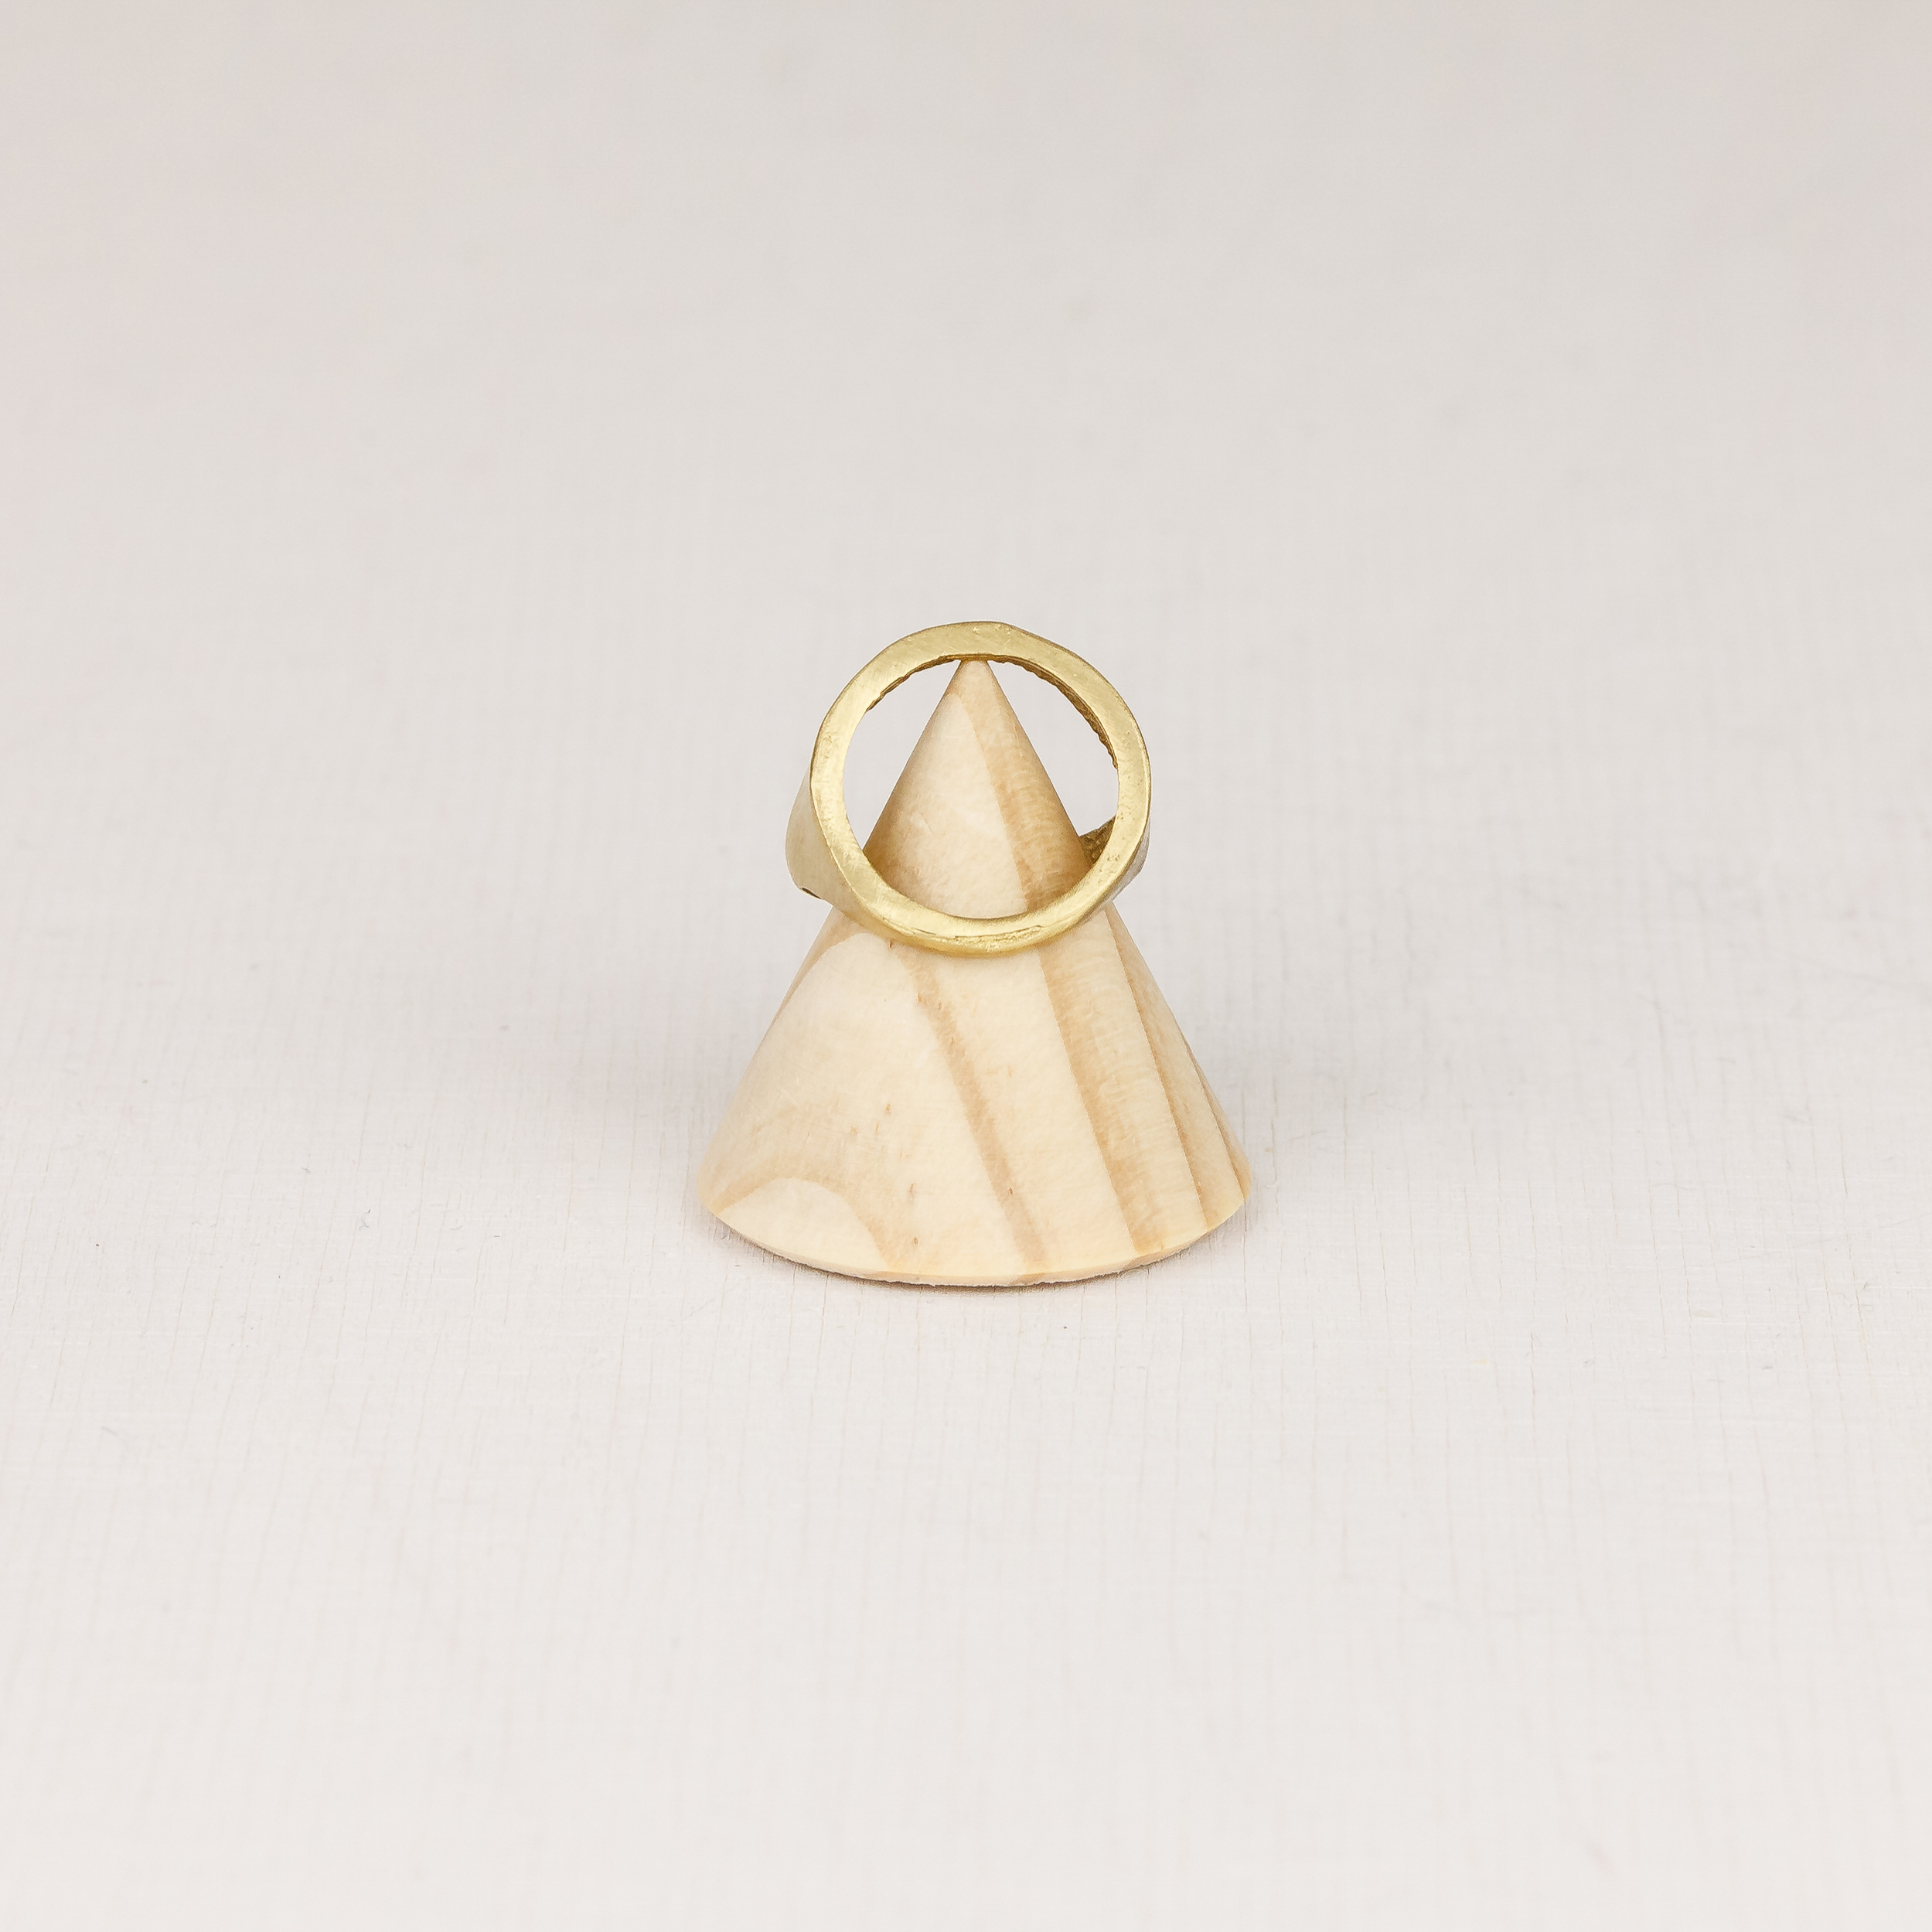 Brass Circle Adjustable Ring by State of A